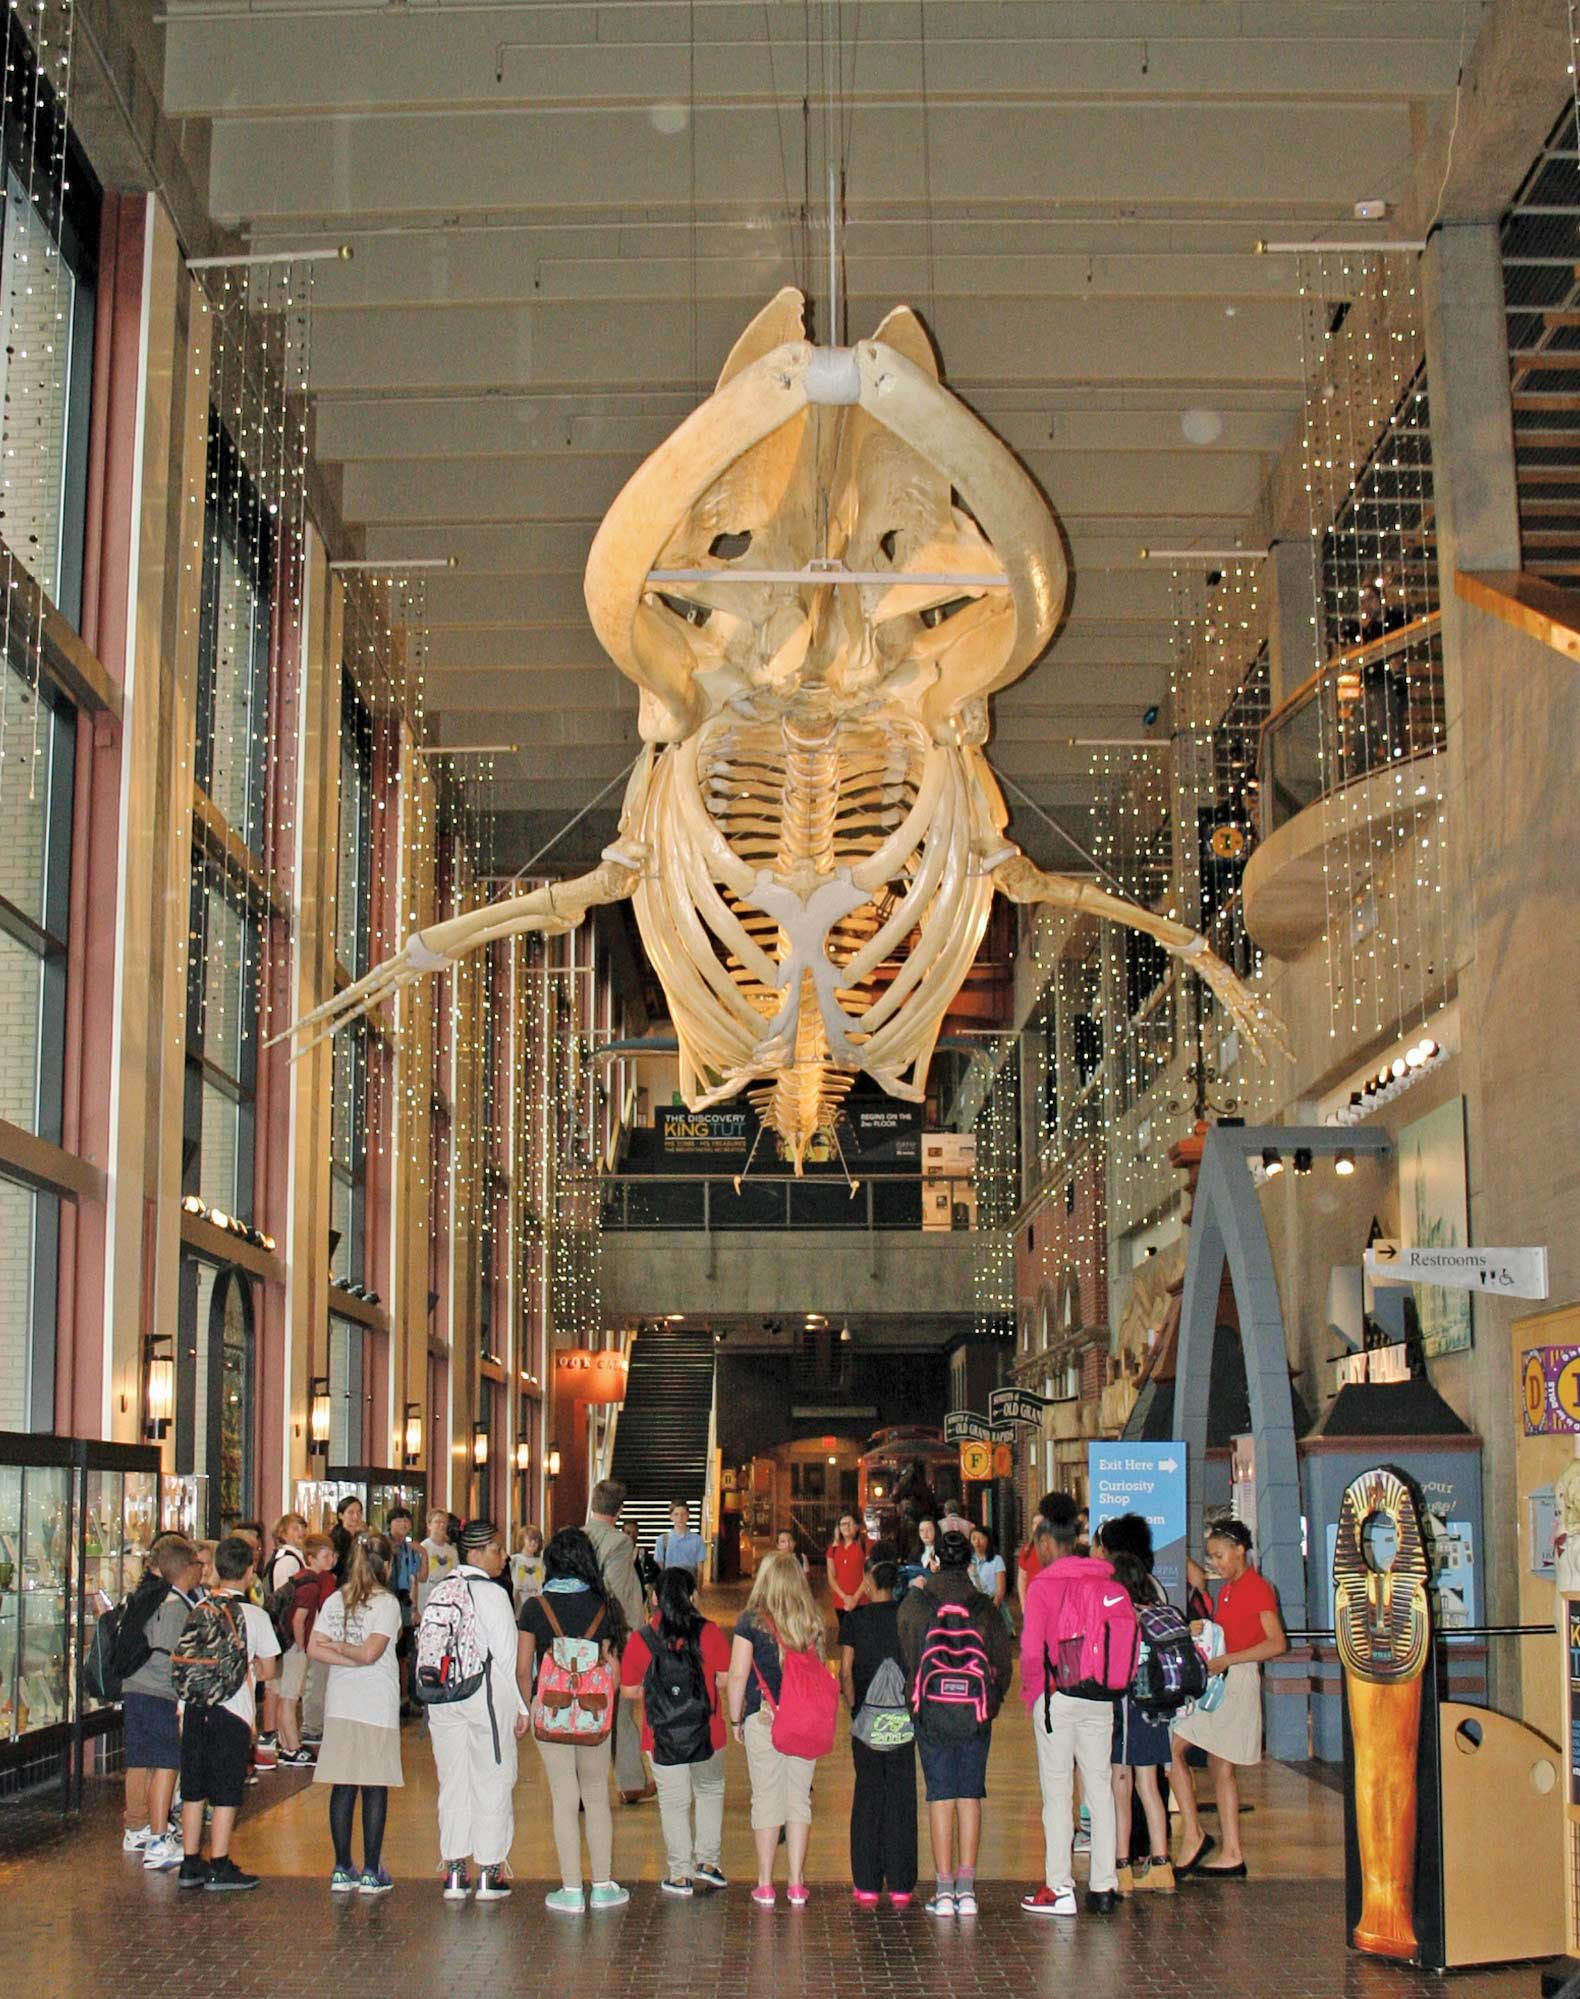 Students gather in the entrance under a fin whale skeleton, which the museum acquired in 1905. The growing school currently houses 120 sixth- and seventh-grade students.